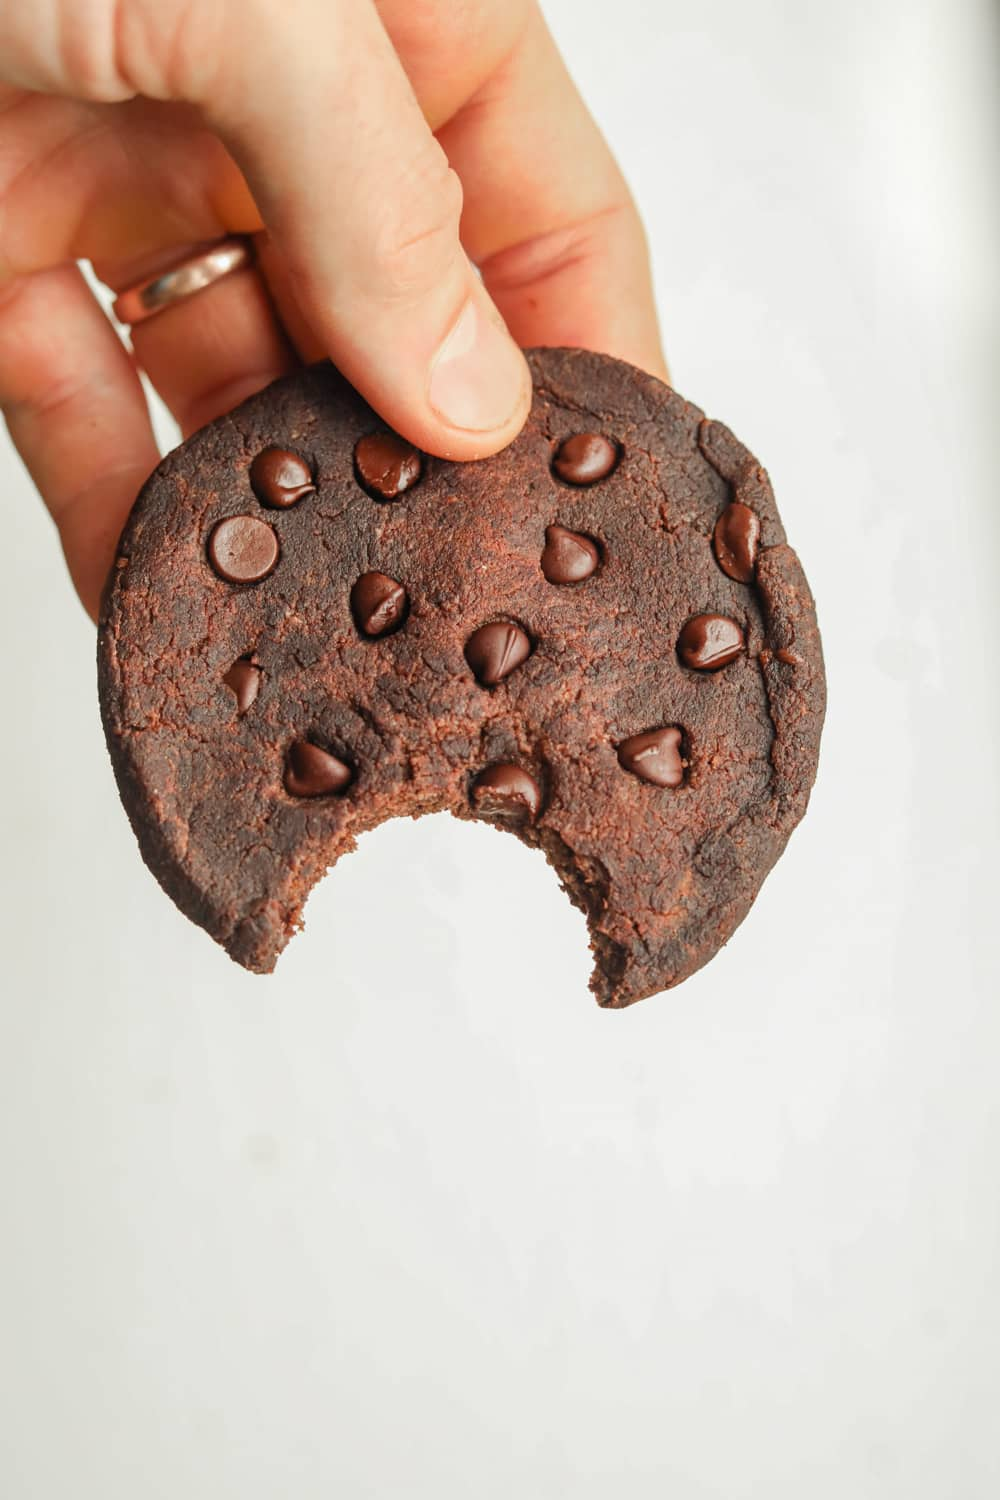 A double chocolate chip cookie that's been bitten being held in a hand.